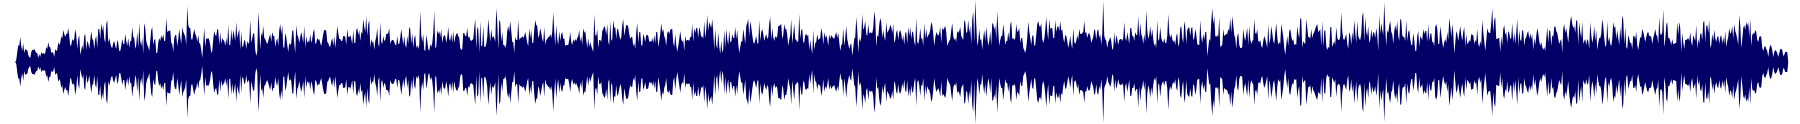 waveform of track #68545